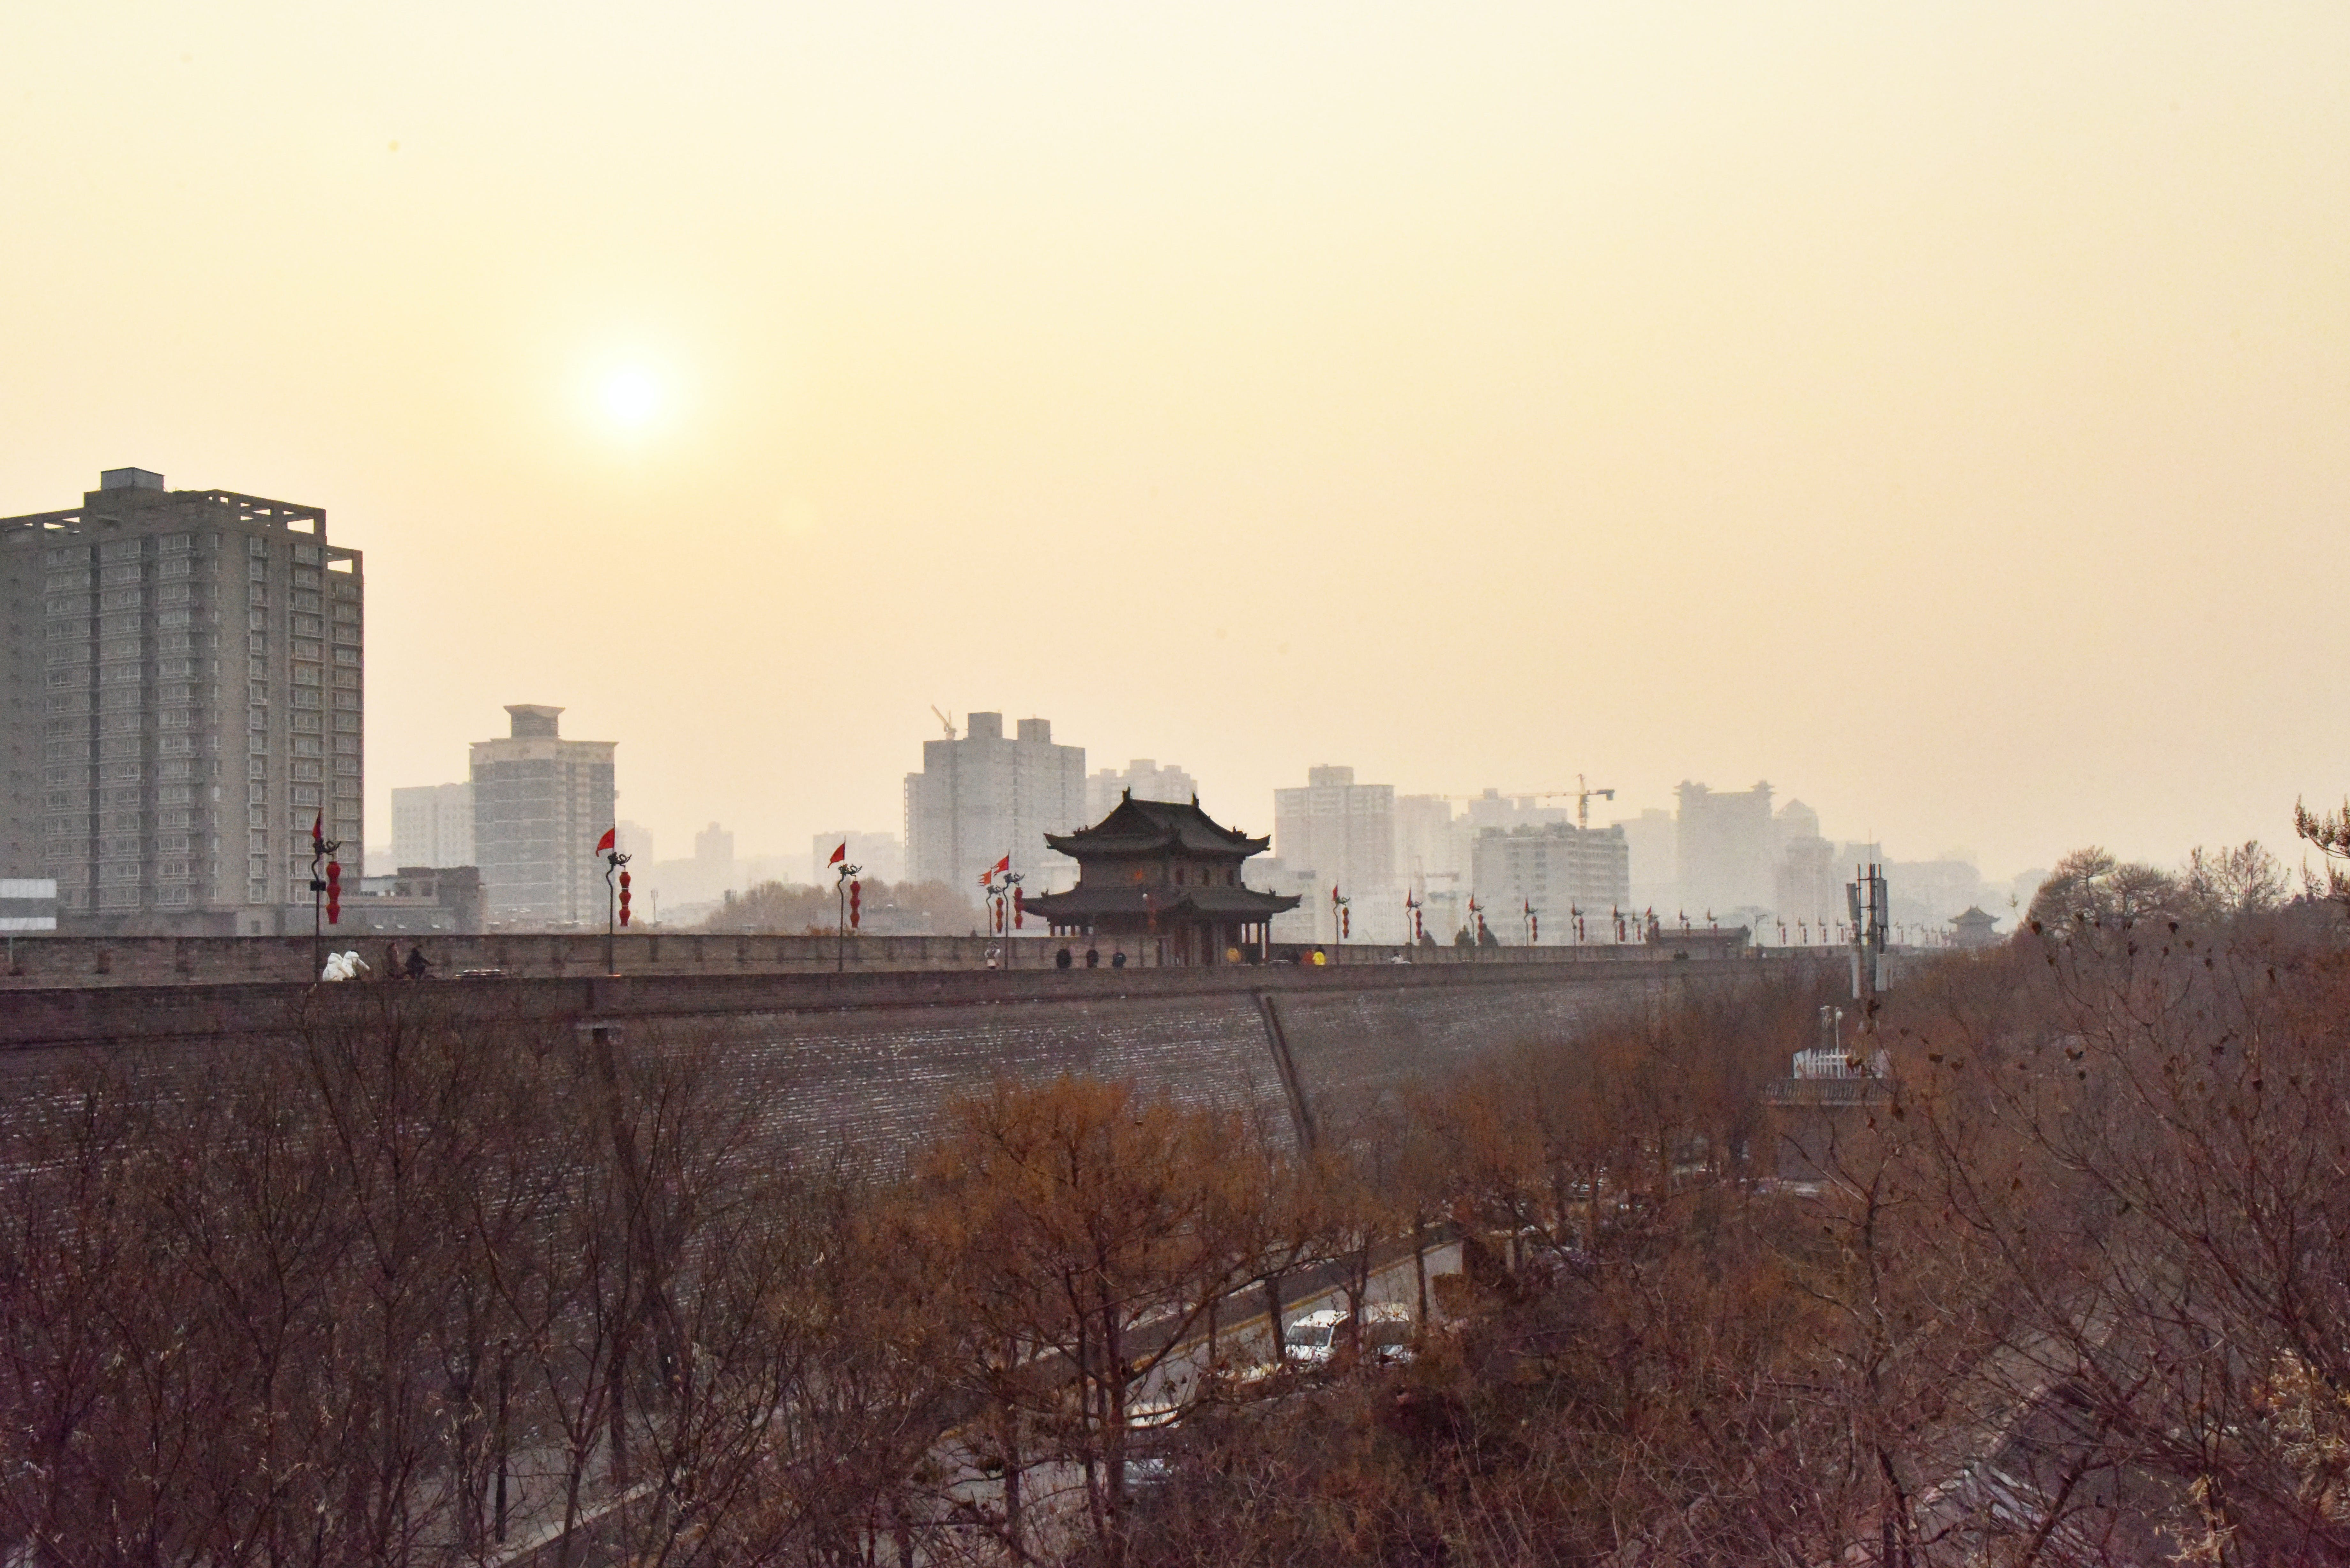 Free stock photo of chinese architecture, chinese wall, city in haze, city wall